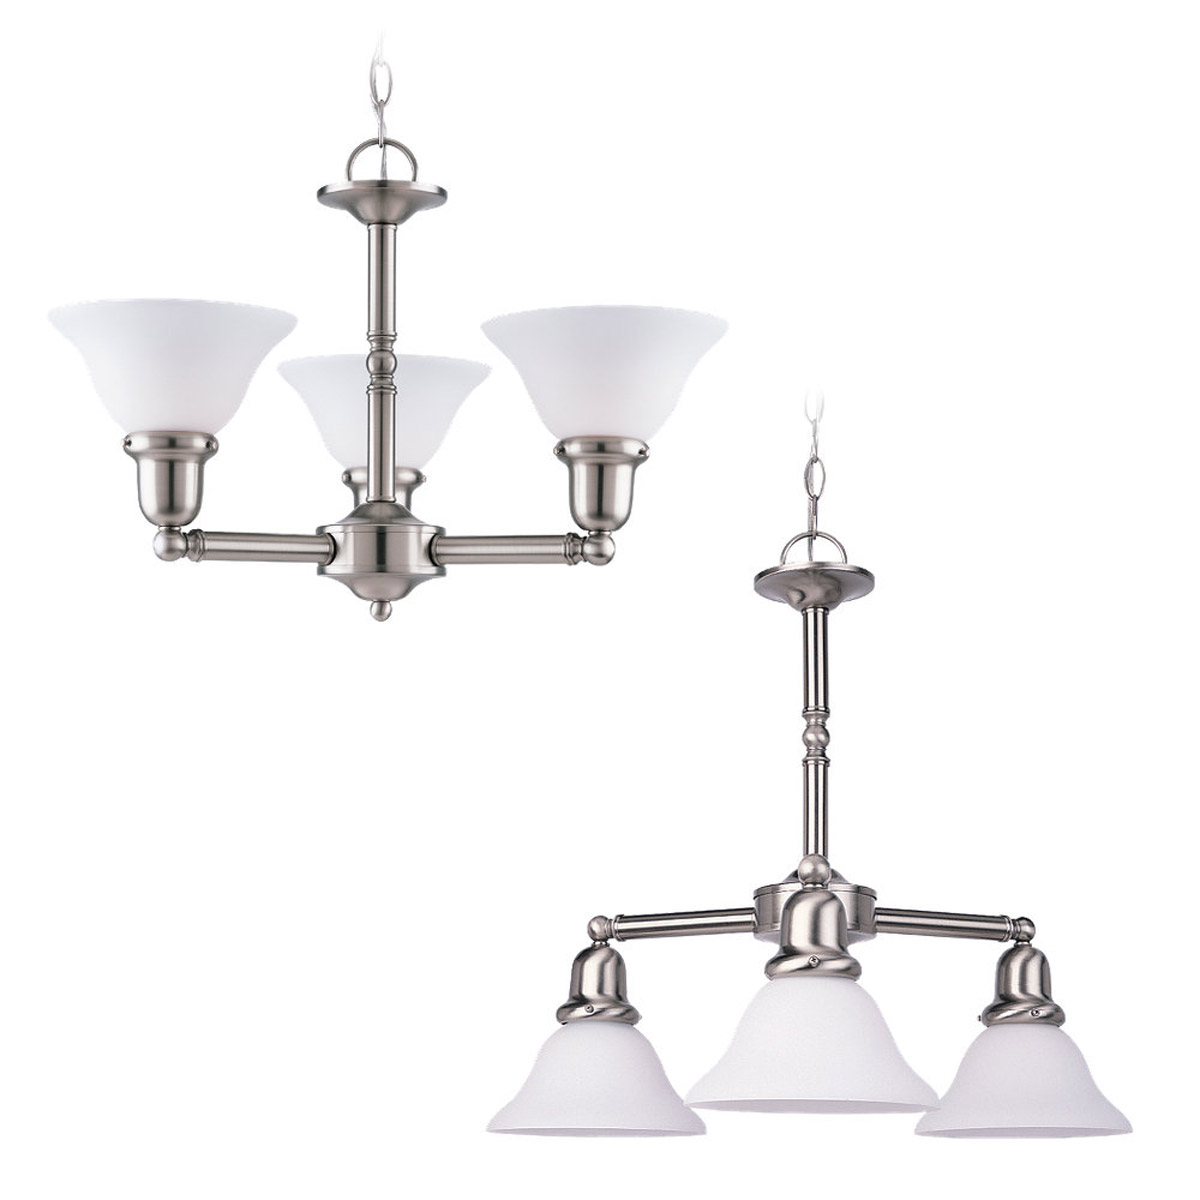 Sea Gull Lighting Sussex 3 Light Chandelier in Brushed Nickel 39061BLE-962 photo